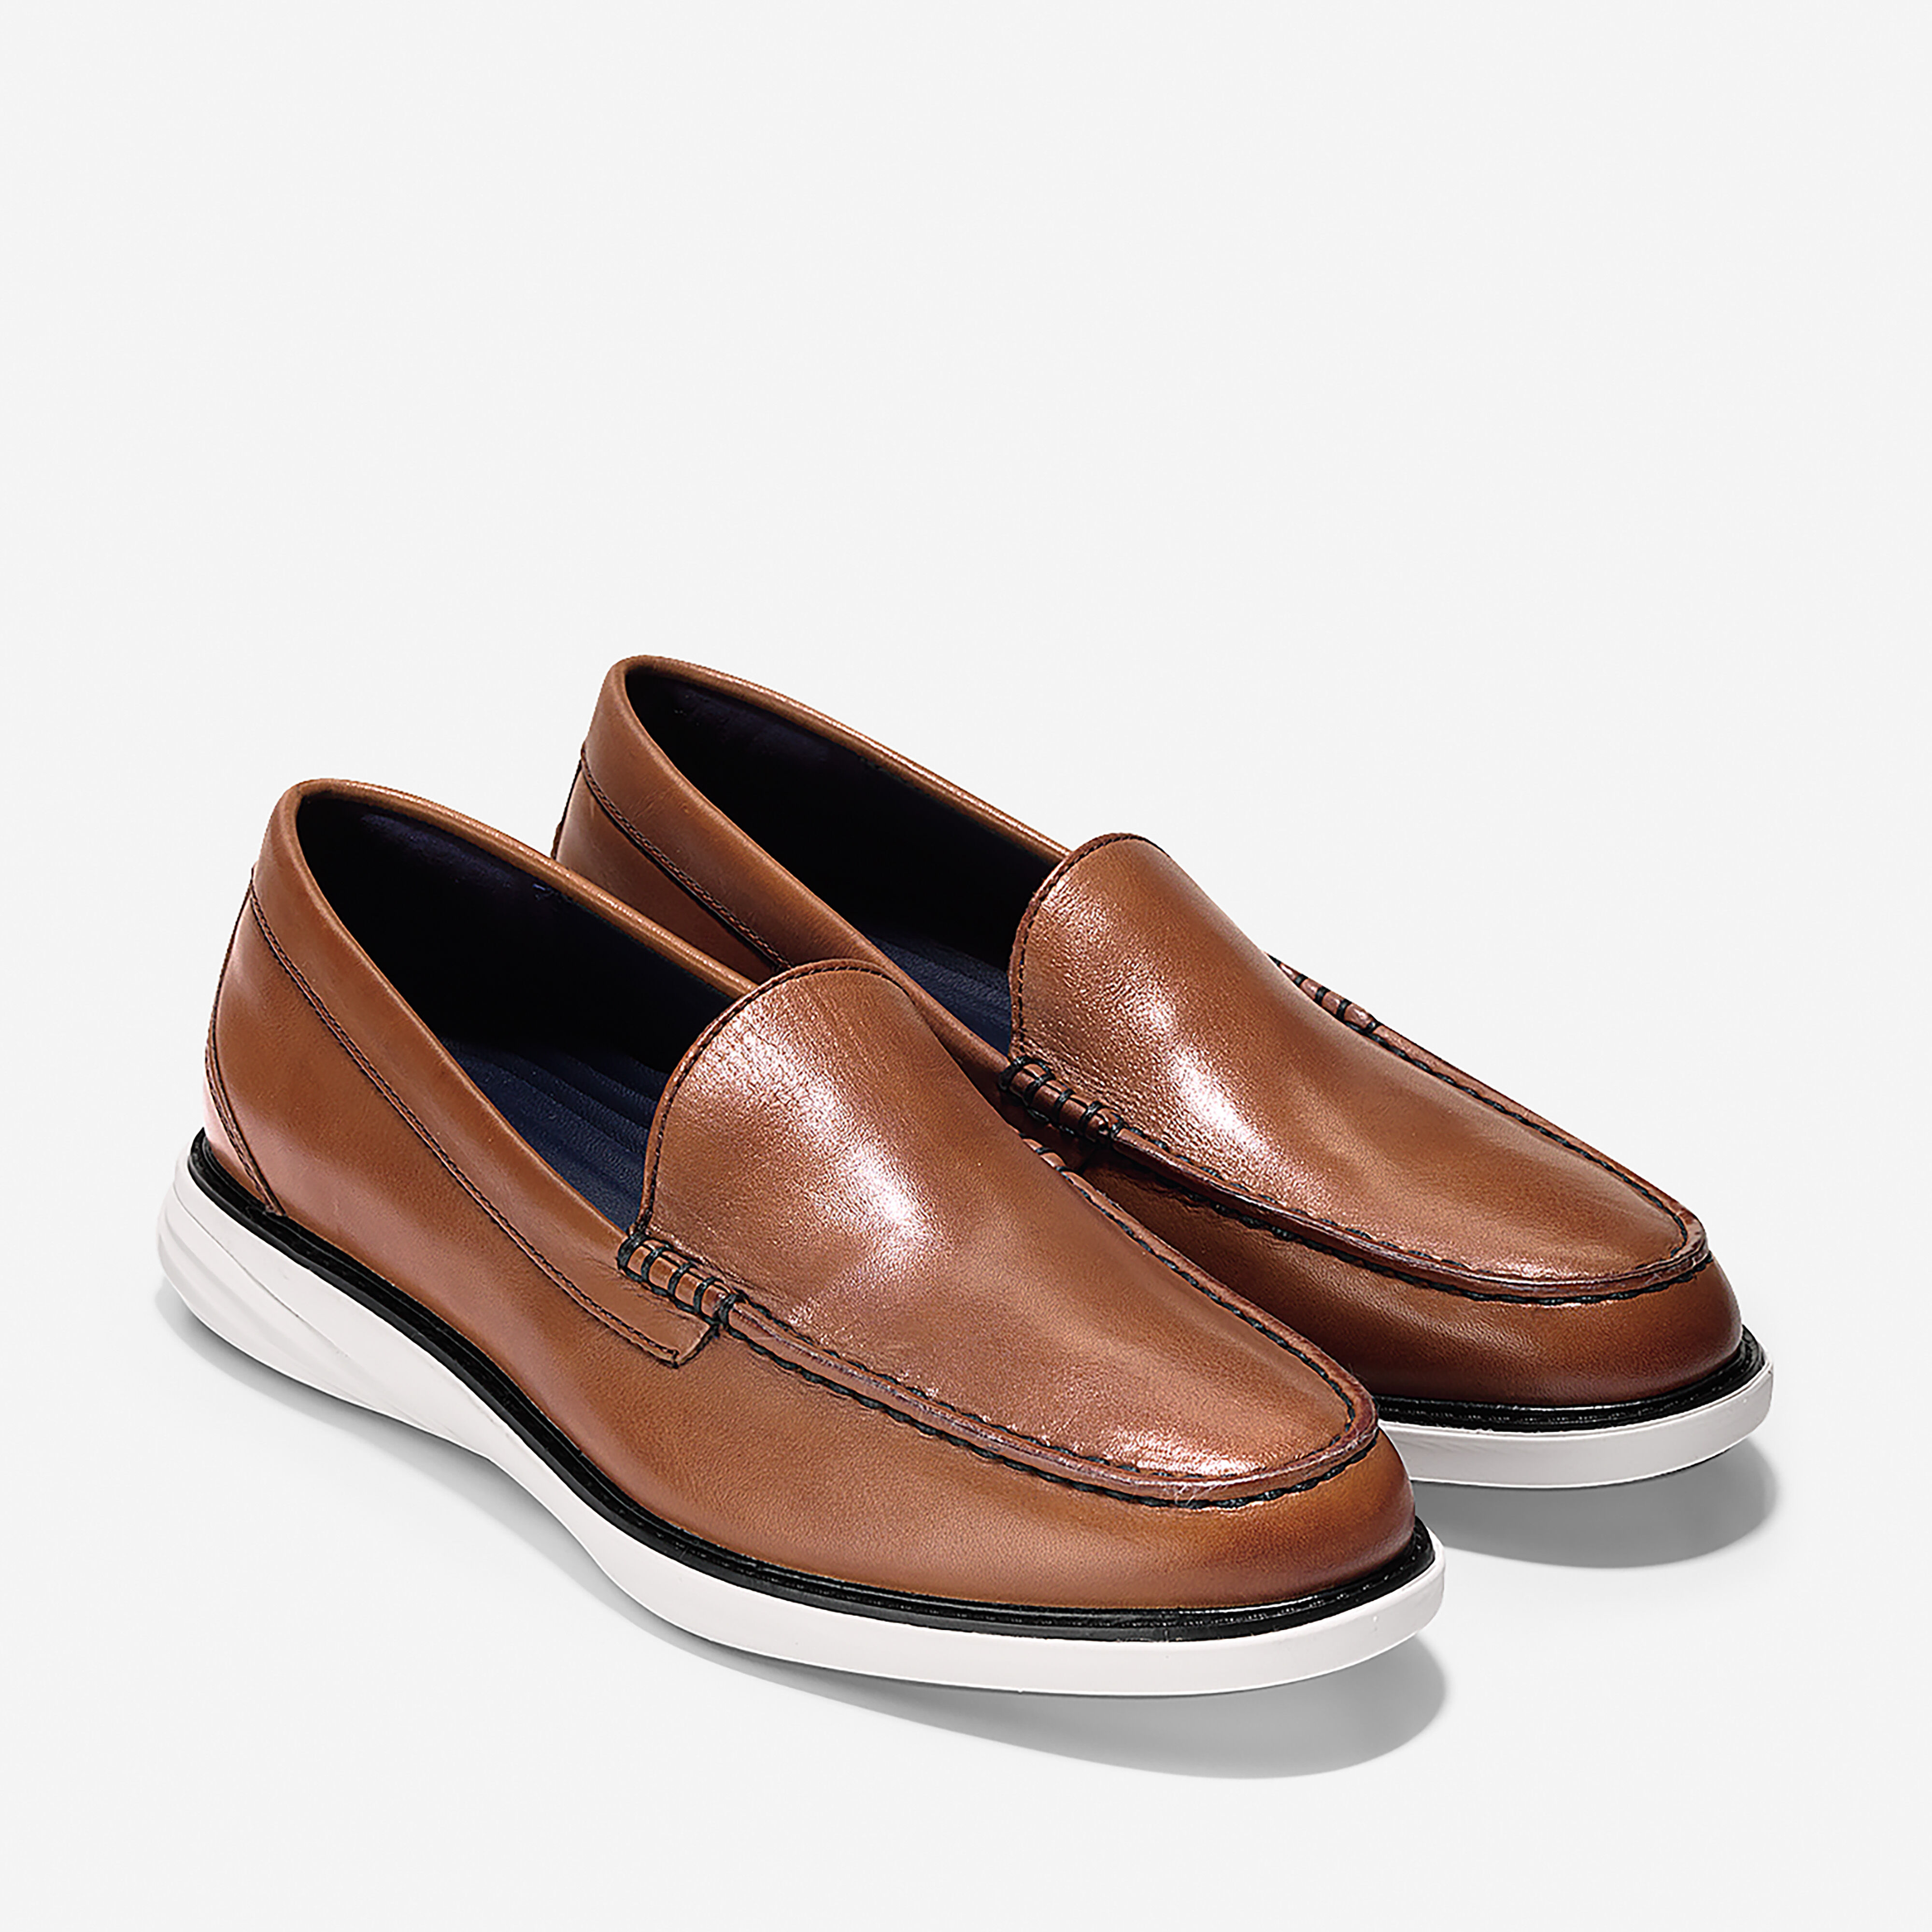 Cole Haan Men/'s GrandEvOlution Venetian Loafer Oxford Slip-On Sandals Comfort